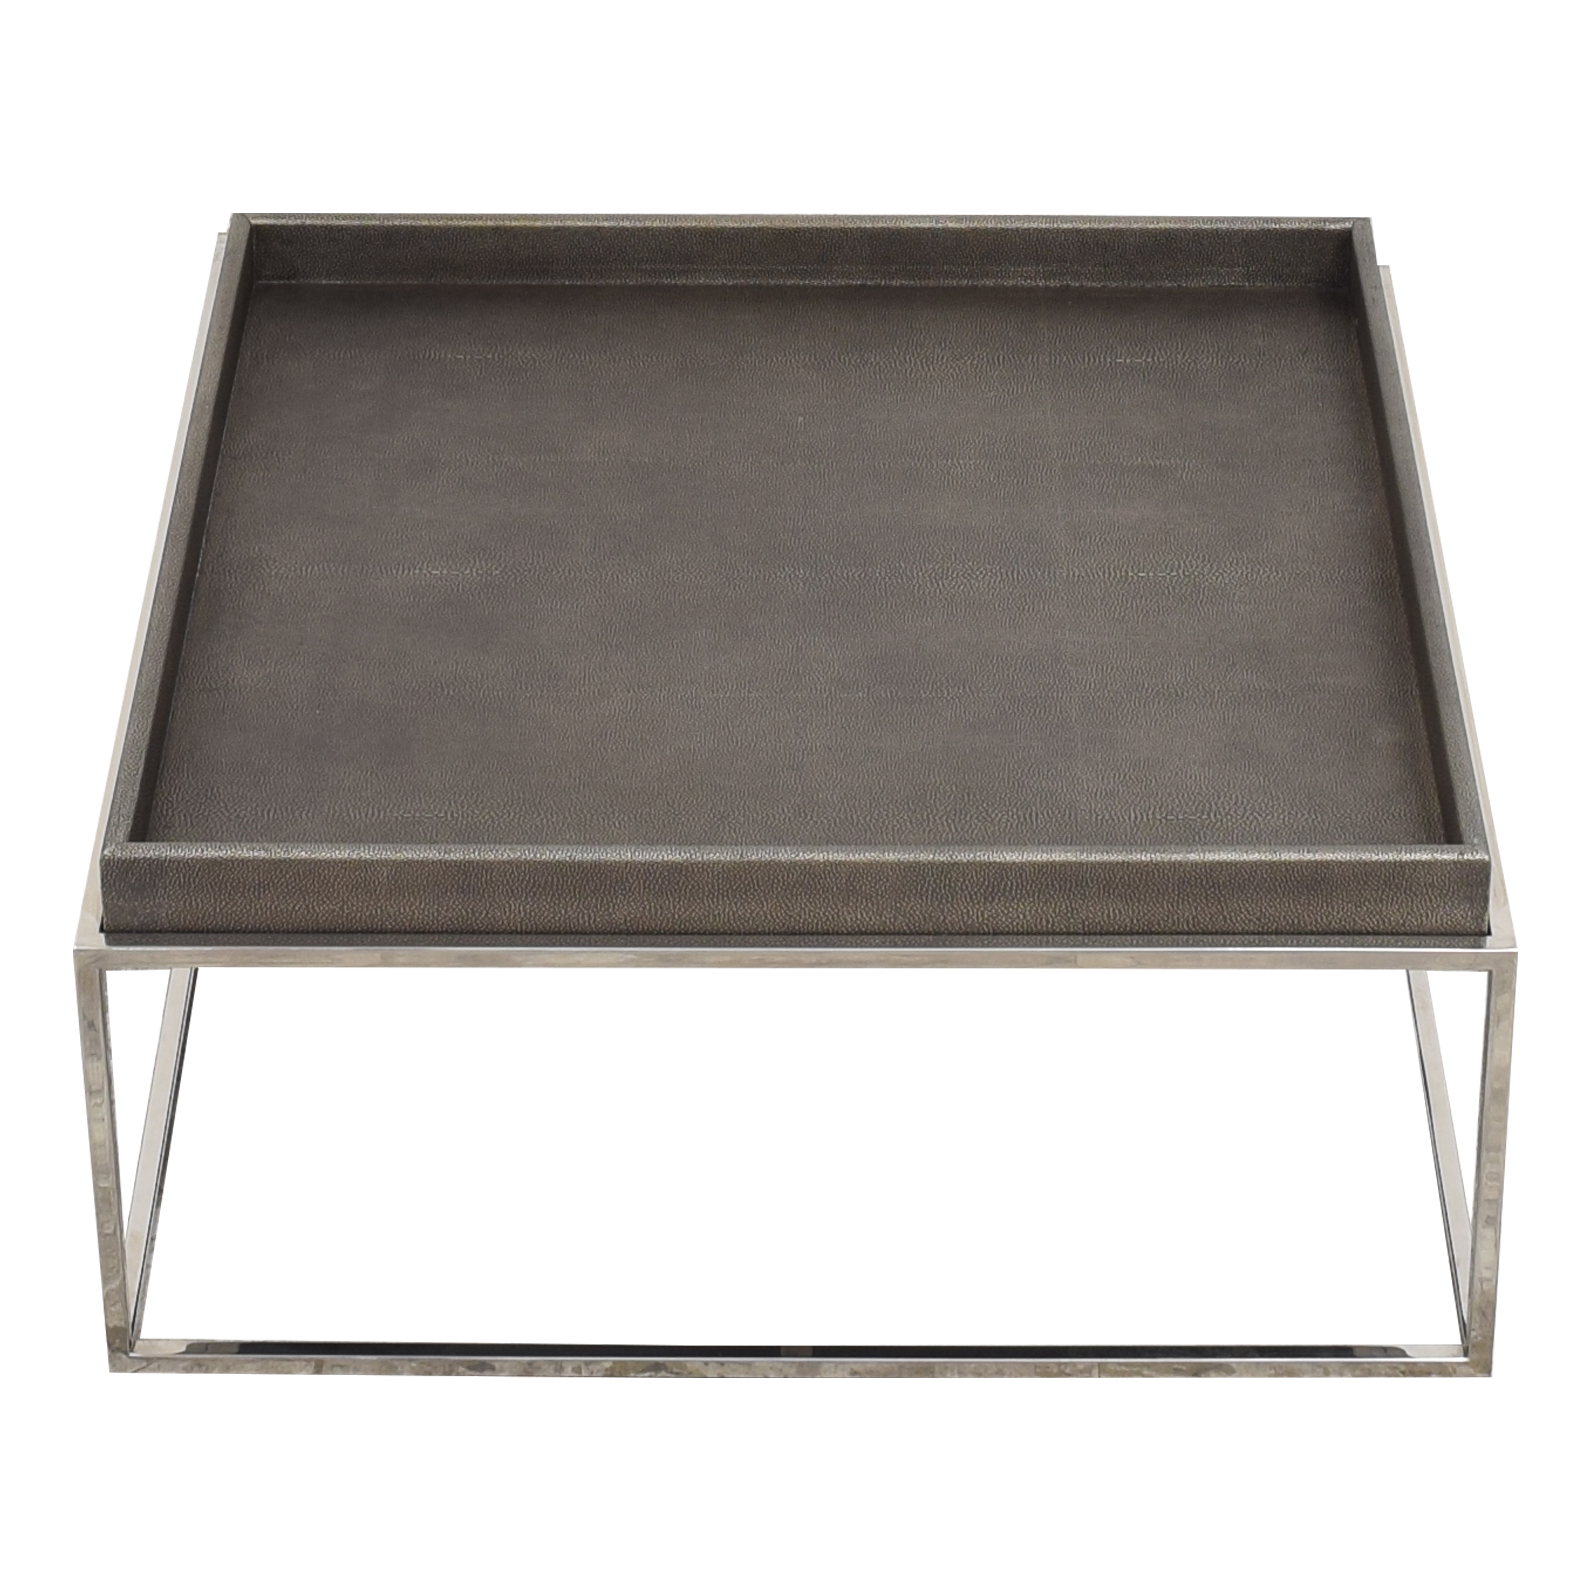 Restoration Hardware Restoration Hardware Hudson Coffee Table for sale